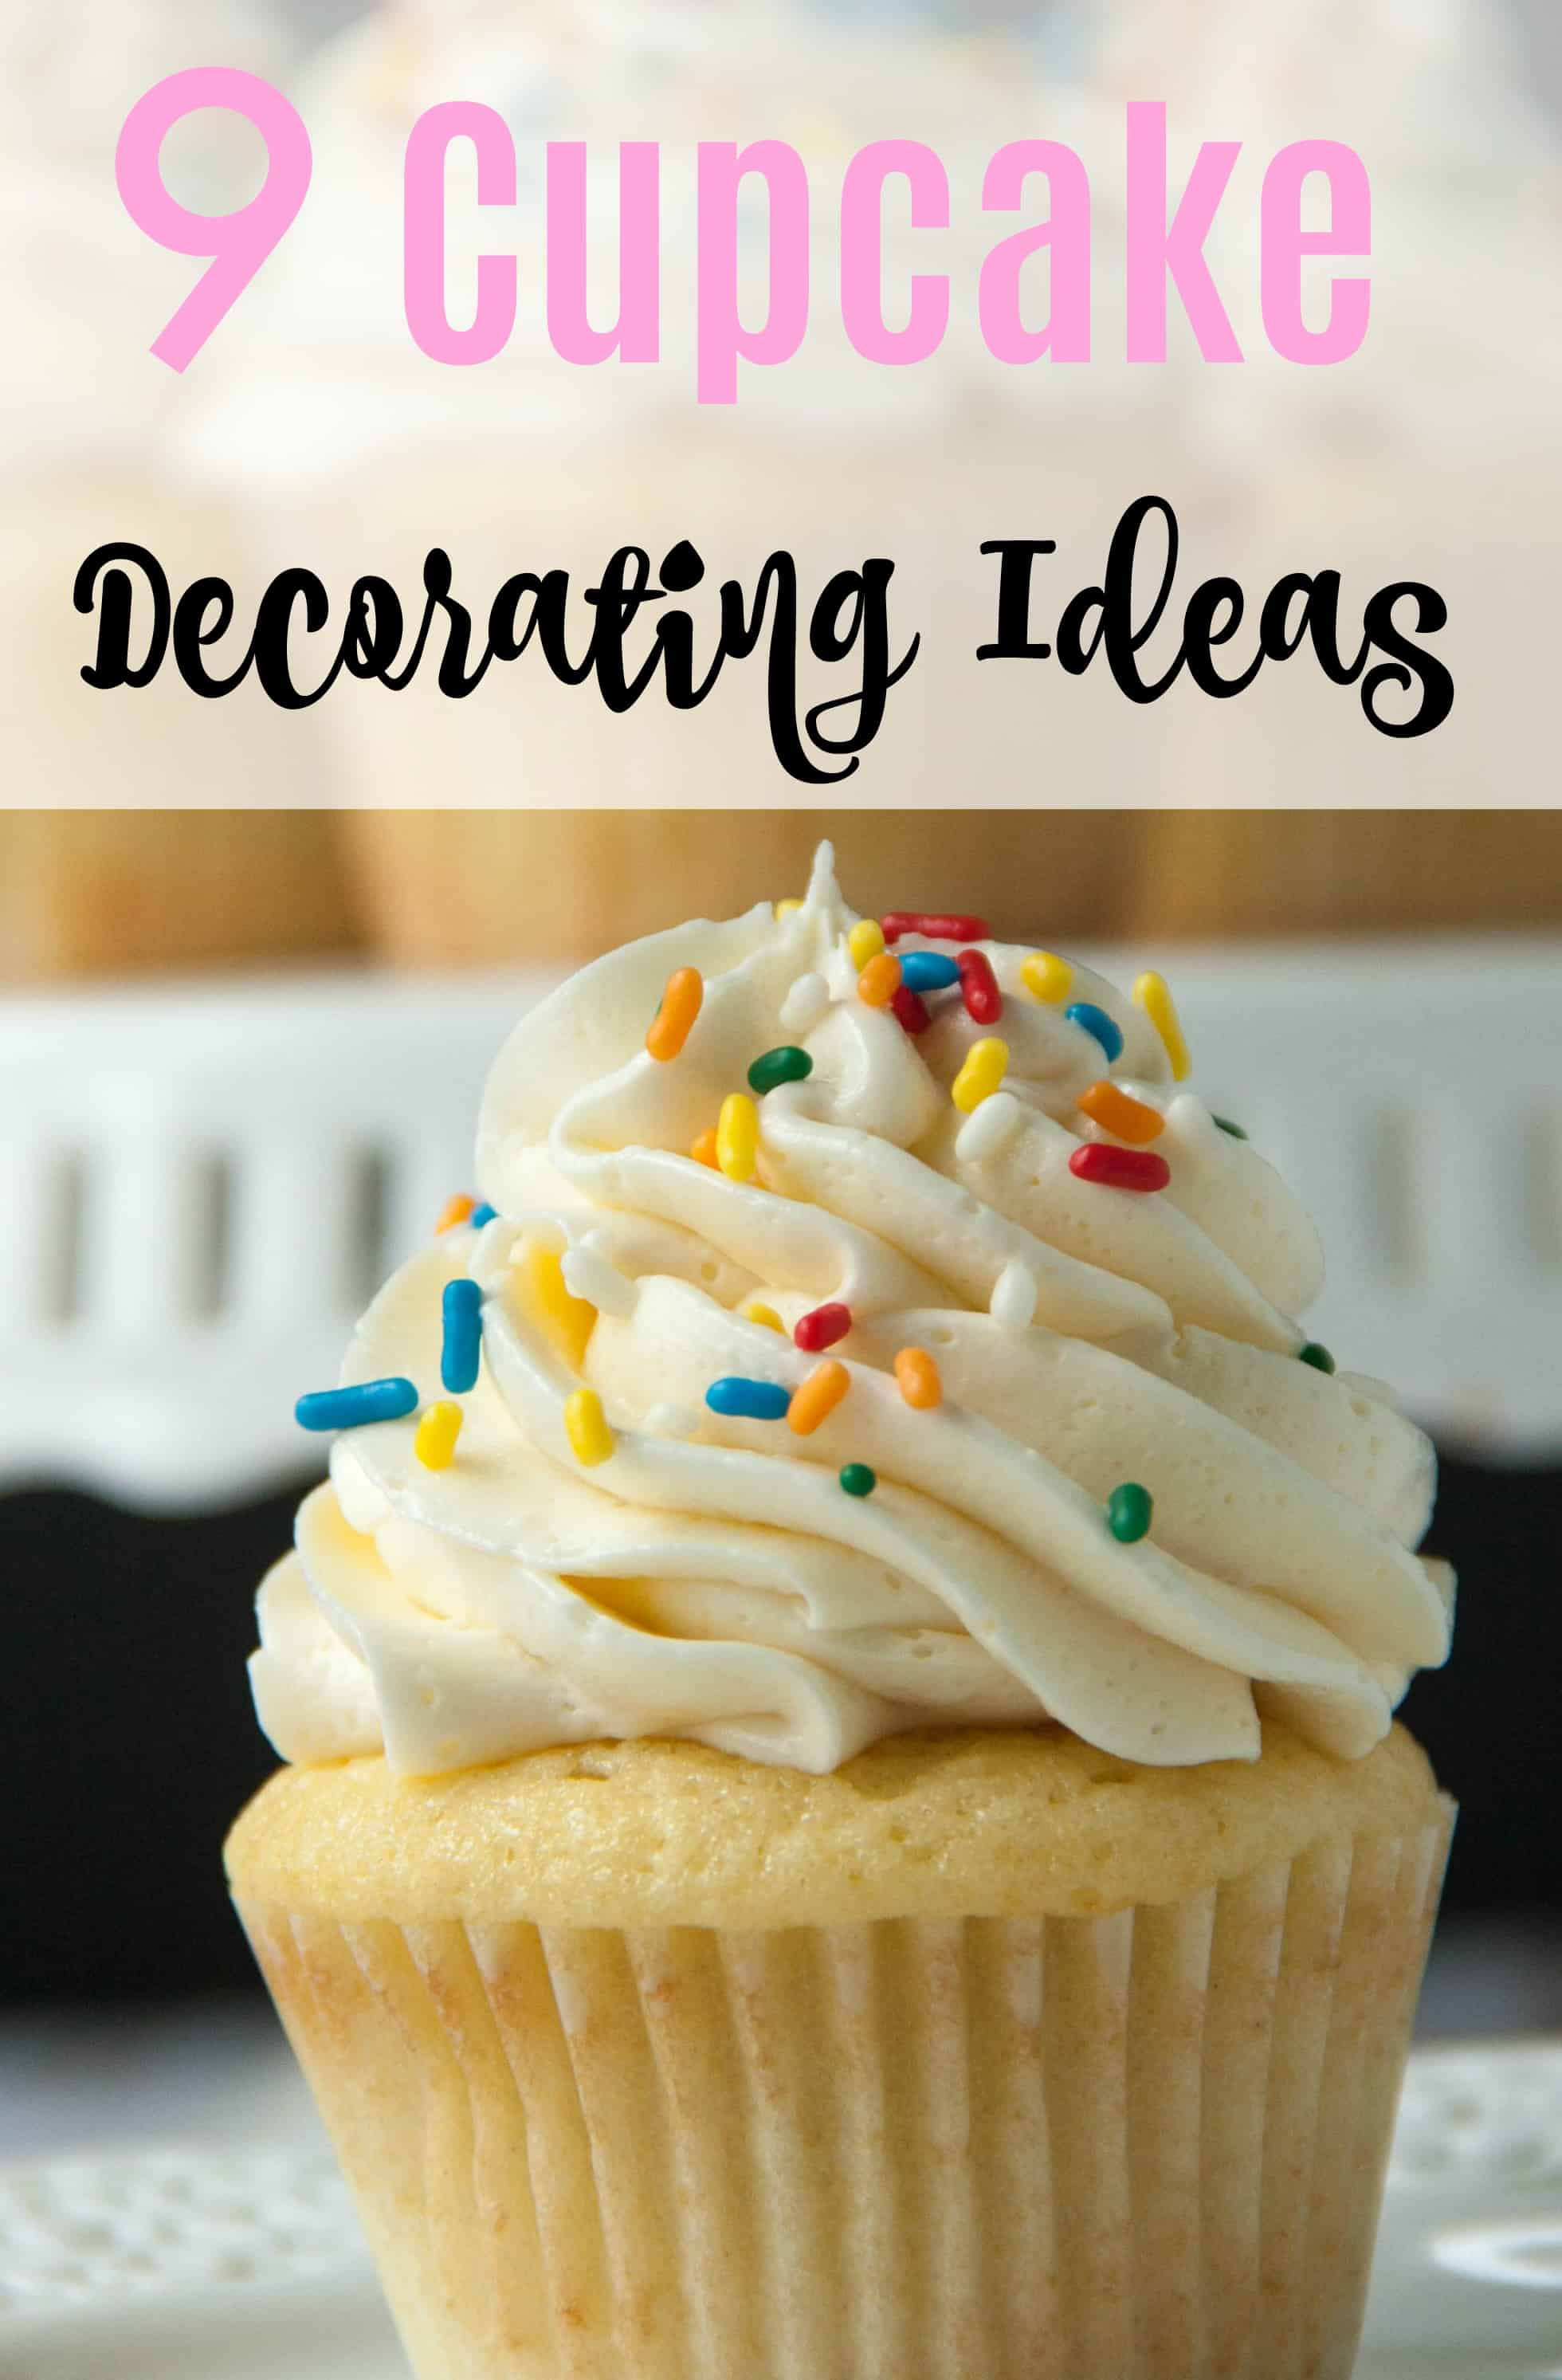 cupcake with title 9 cupcake decorating ideas